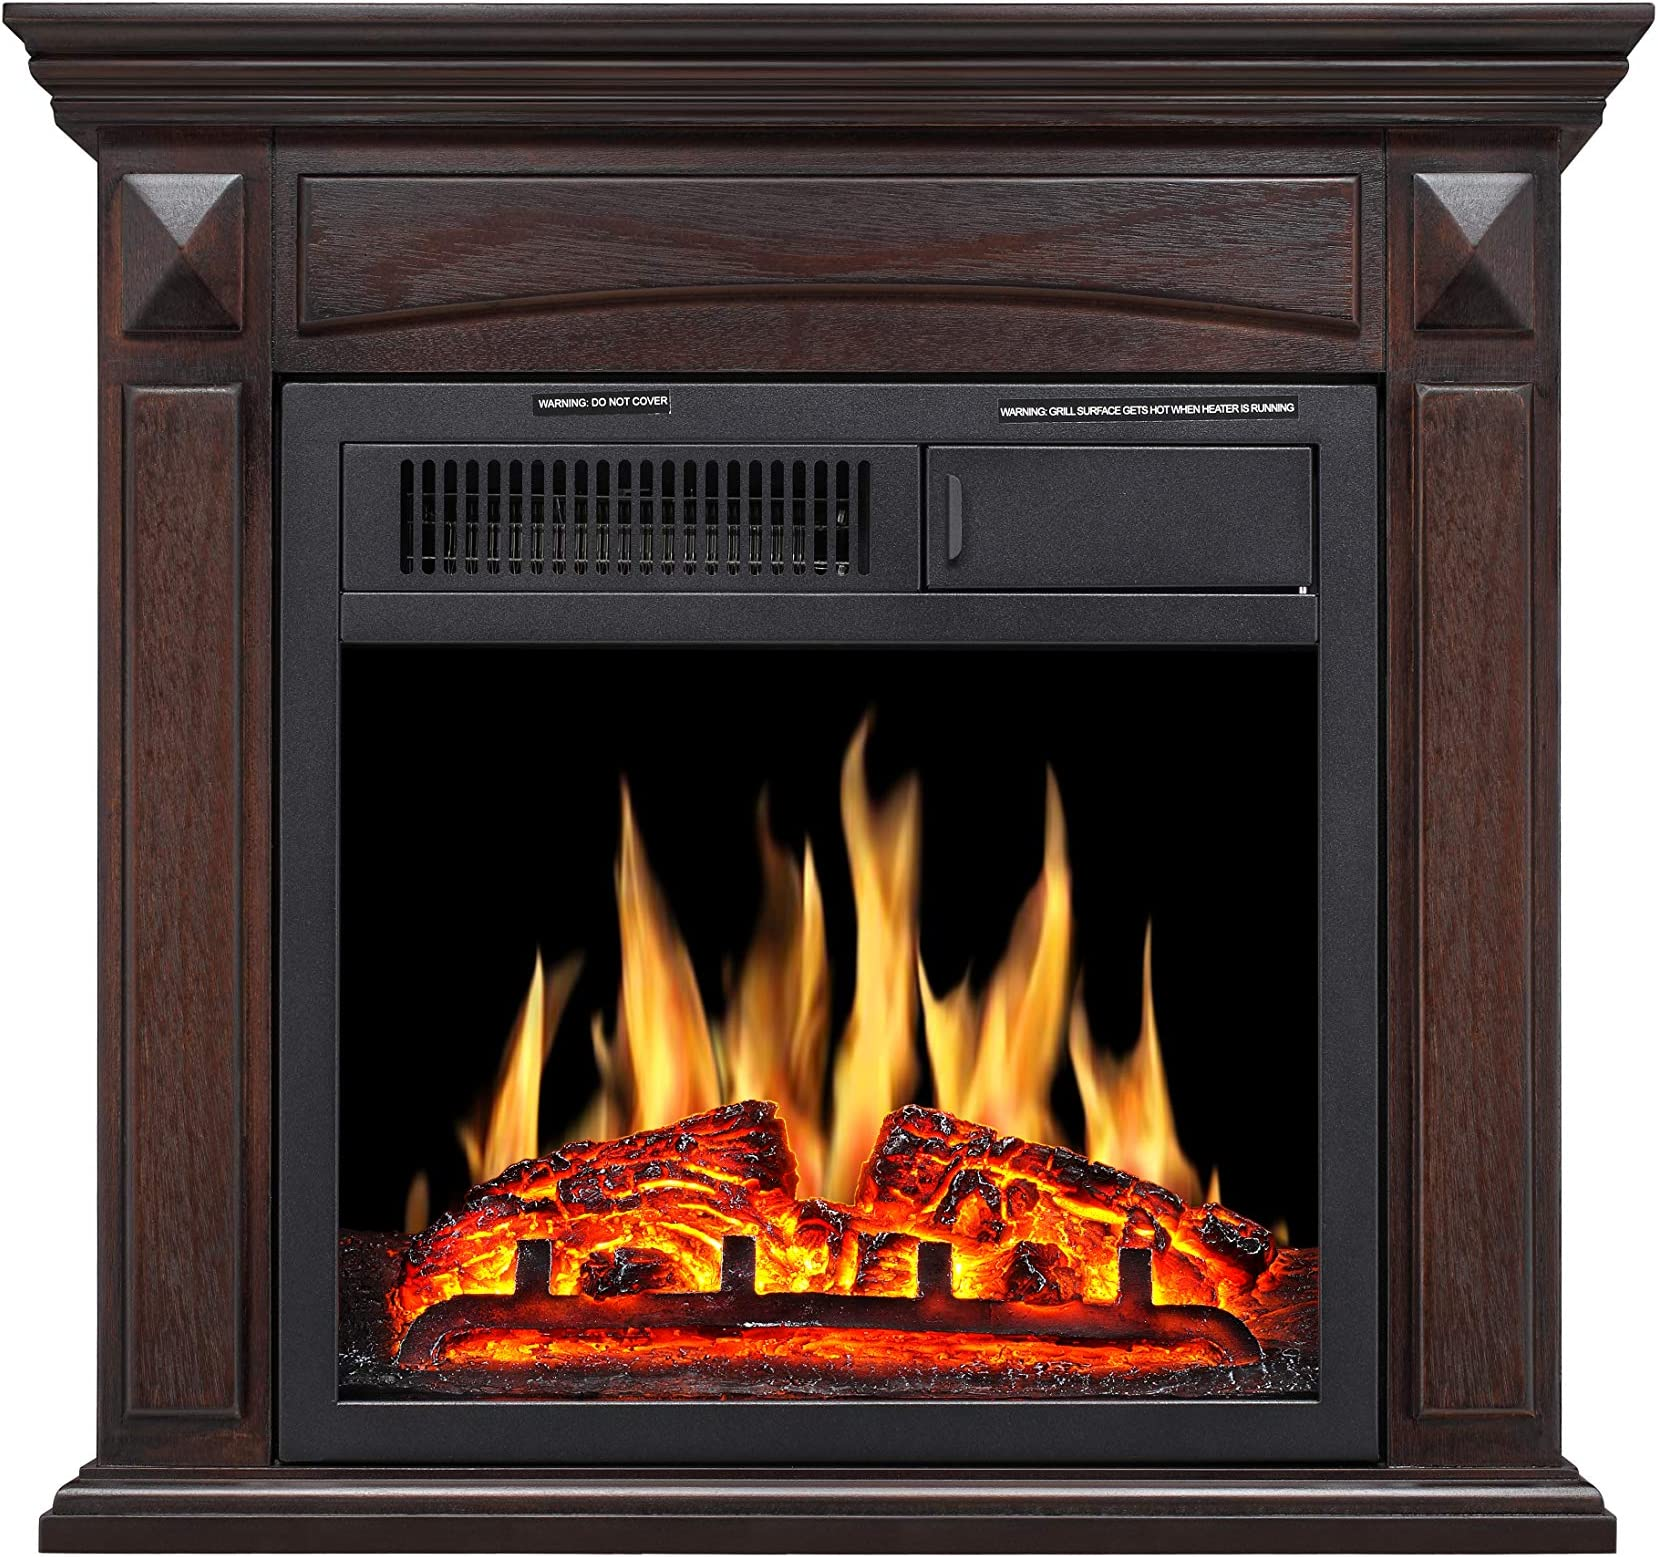 Joy Pebble Electric Fireplace Mantel Wooden Surround Firebox Freestanding Fireplace Hearter With Realistic Log Flame Remote Control 750 1500w Brown Kitchen Dining